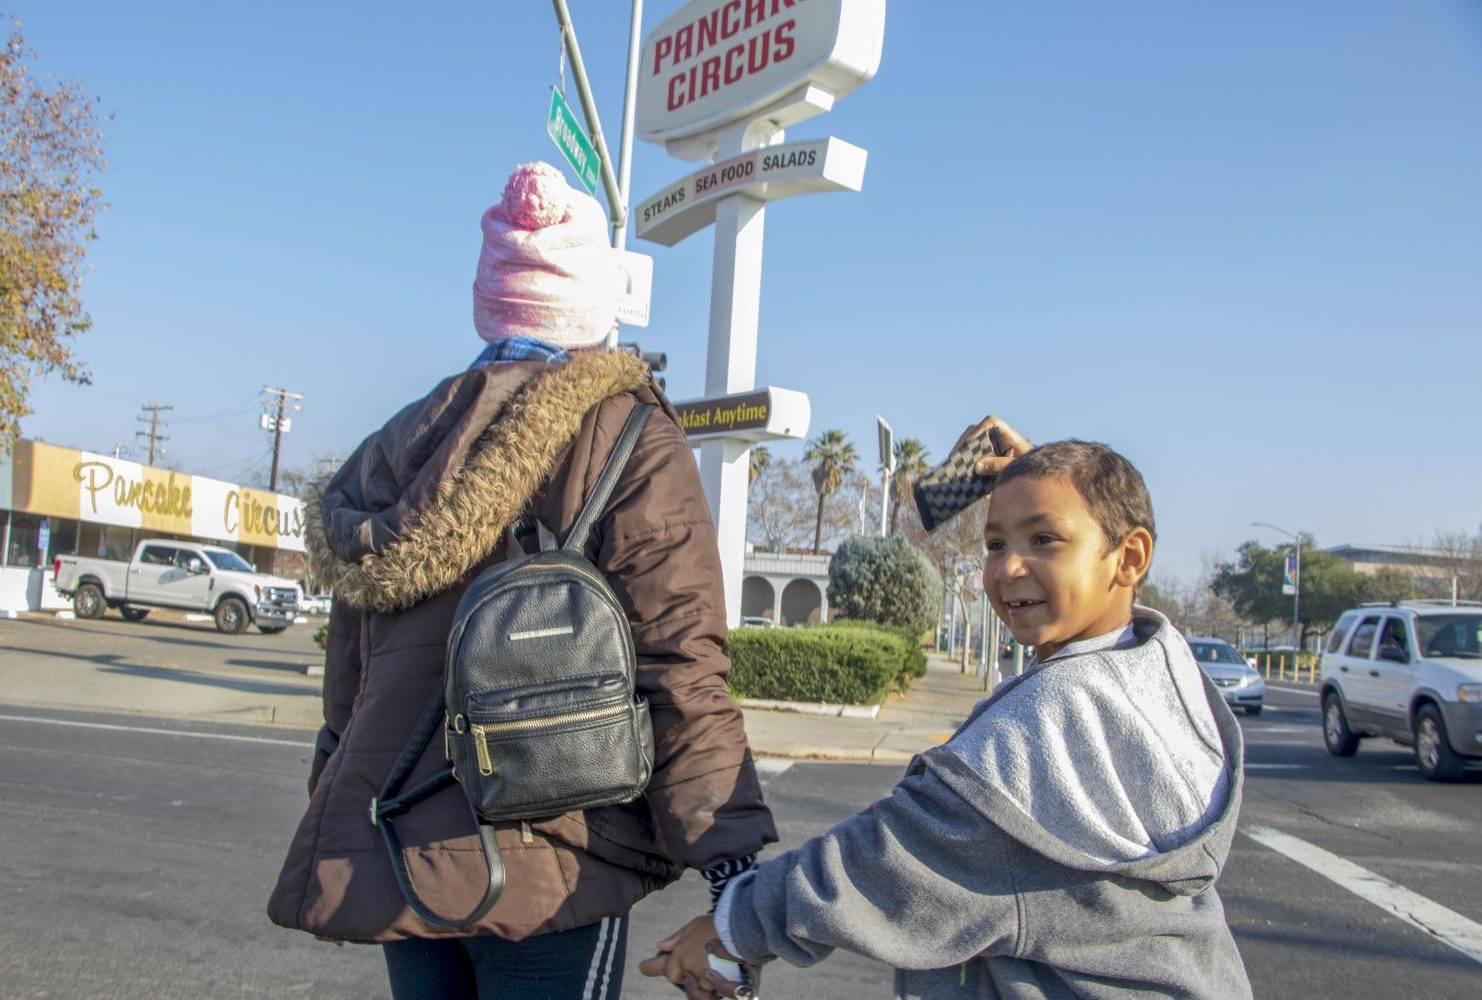 After receiving funds from posting in a Facebook group, Duren-Hill was able to take her son out to dinner to Pancake Circus in Sacramento, California on Jan. 2, 2019. (Photo by Ashley Hayes-Stone)